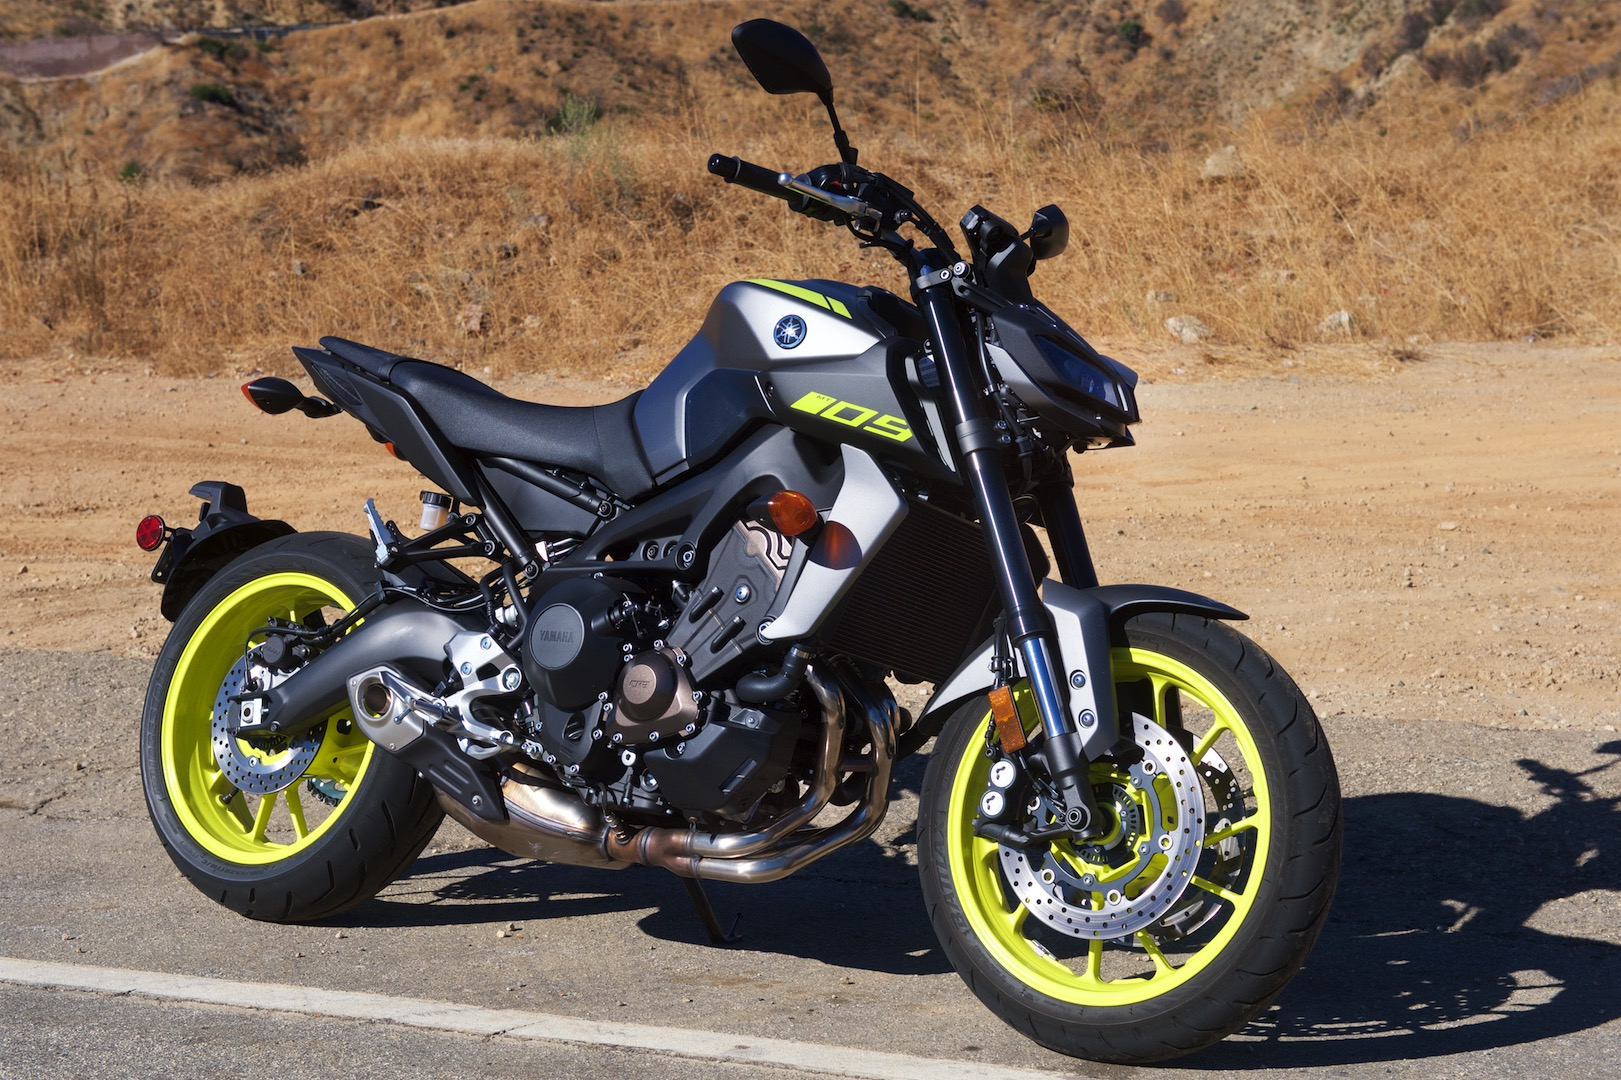 2018 Yamaha MT-09 Review (14 Fast Facts)